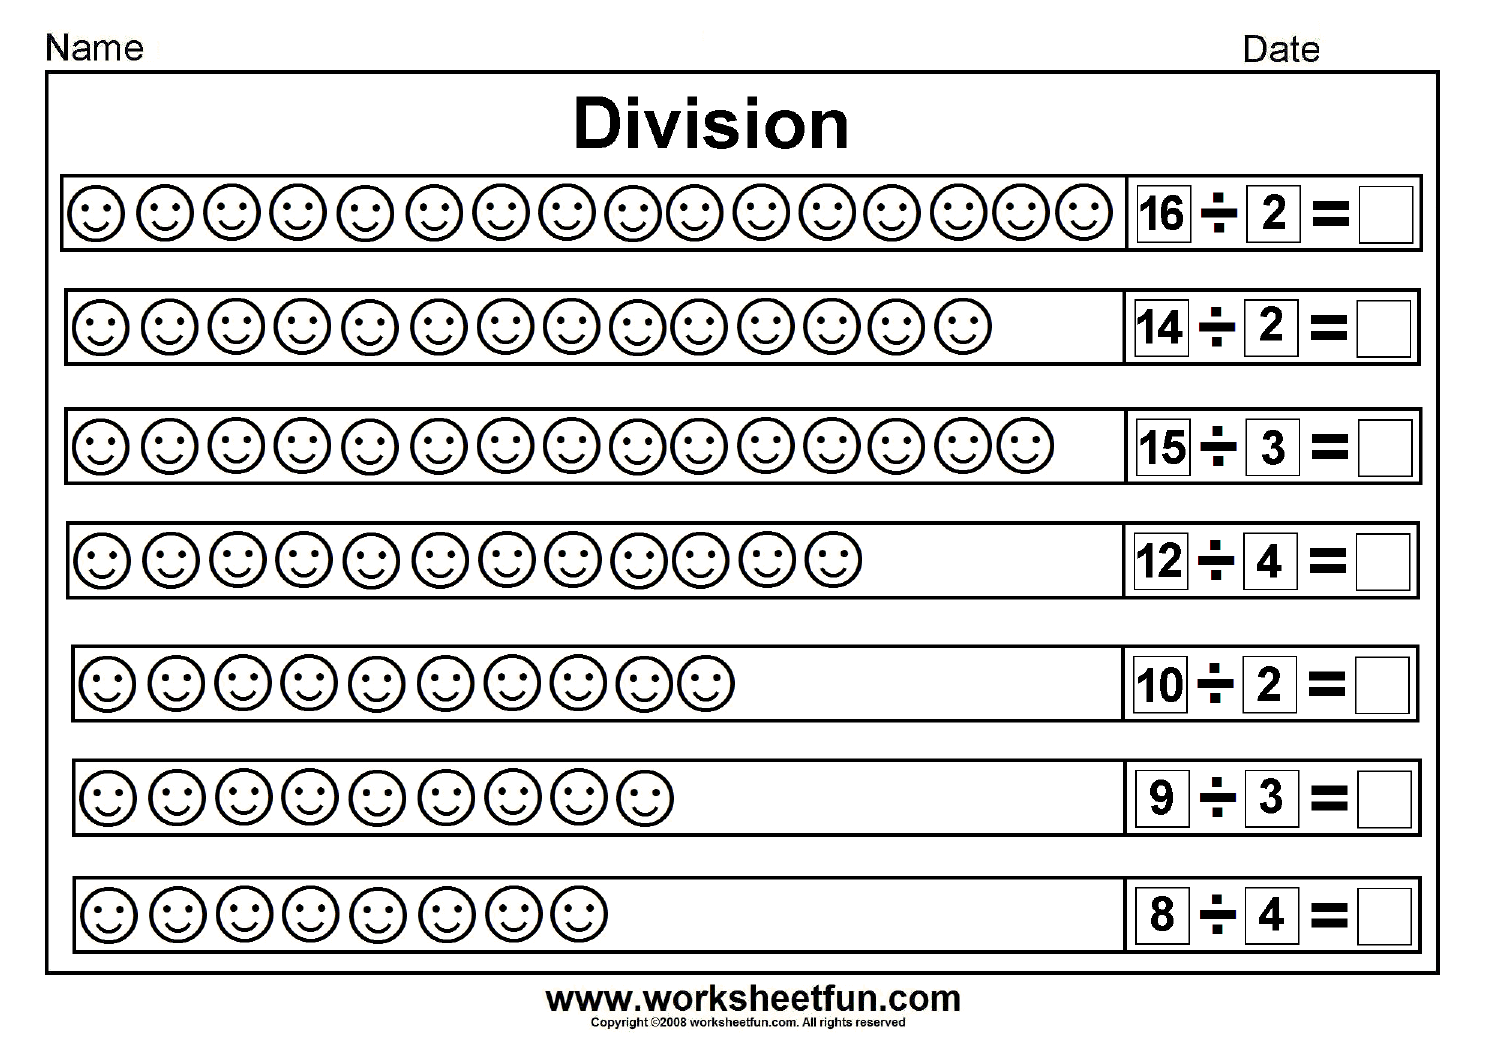 Division homework worksheets – Division Worksheets with Pictures